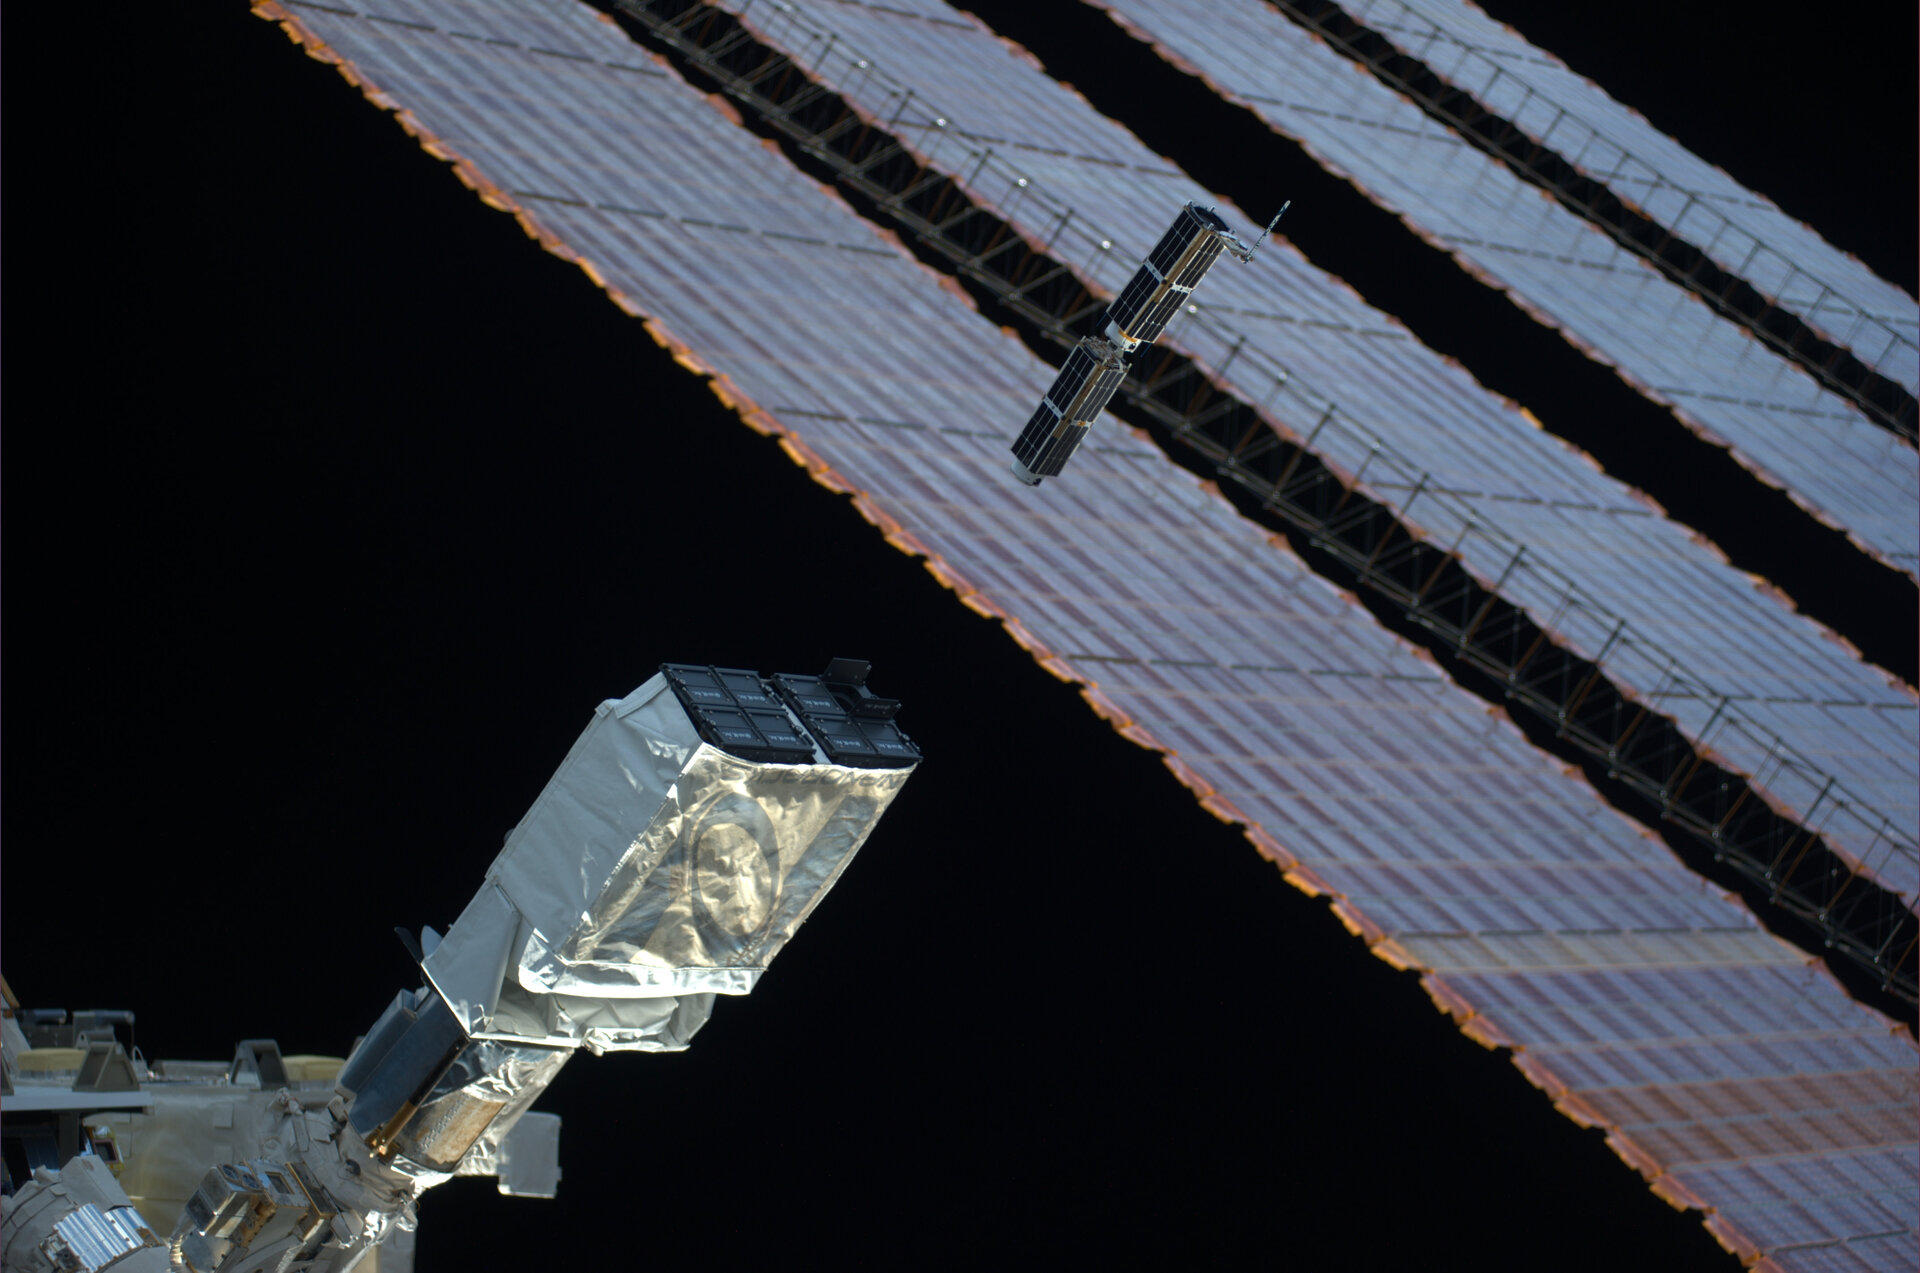 CubeSats launched from ISS